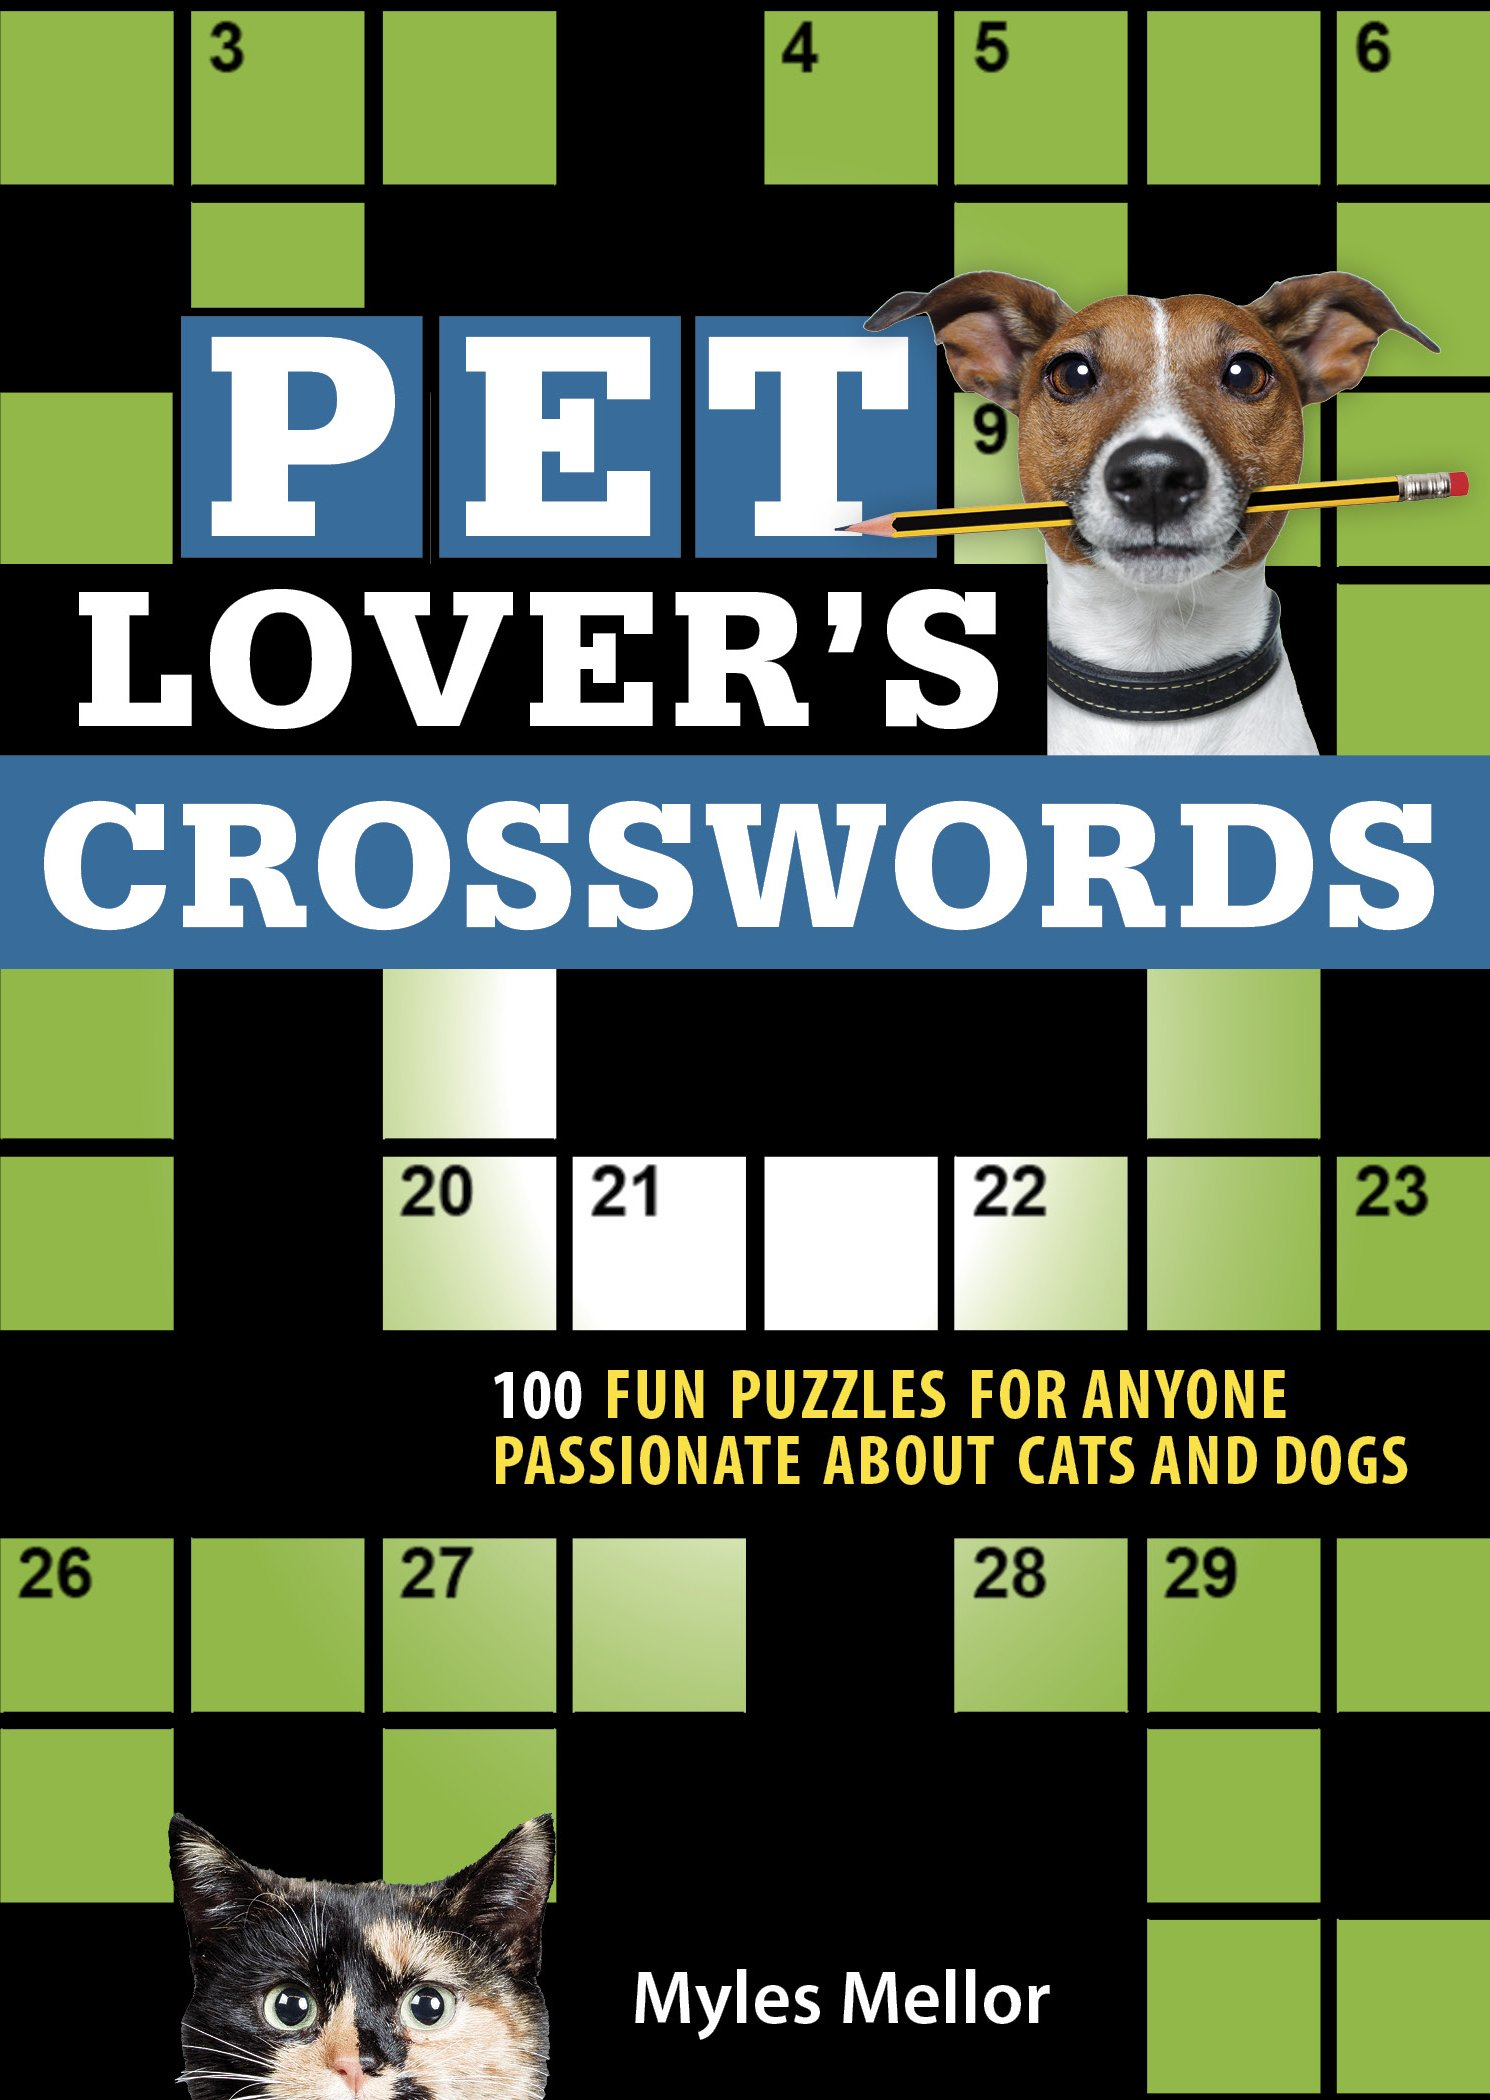 Pet Lovers Crosswords 100 Fun Crosswords For Anyone Who Loves Cats And Dogs Myles Mellor Sellers Publishing 9781416246626 Amazon Com Books